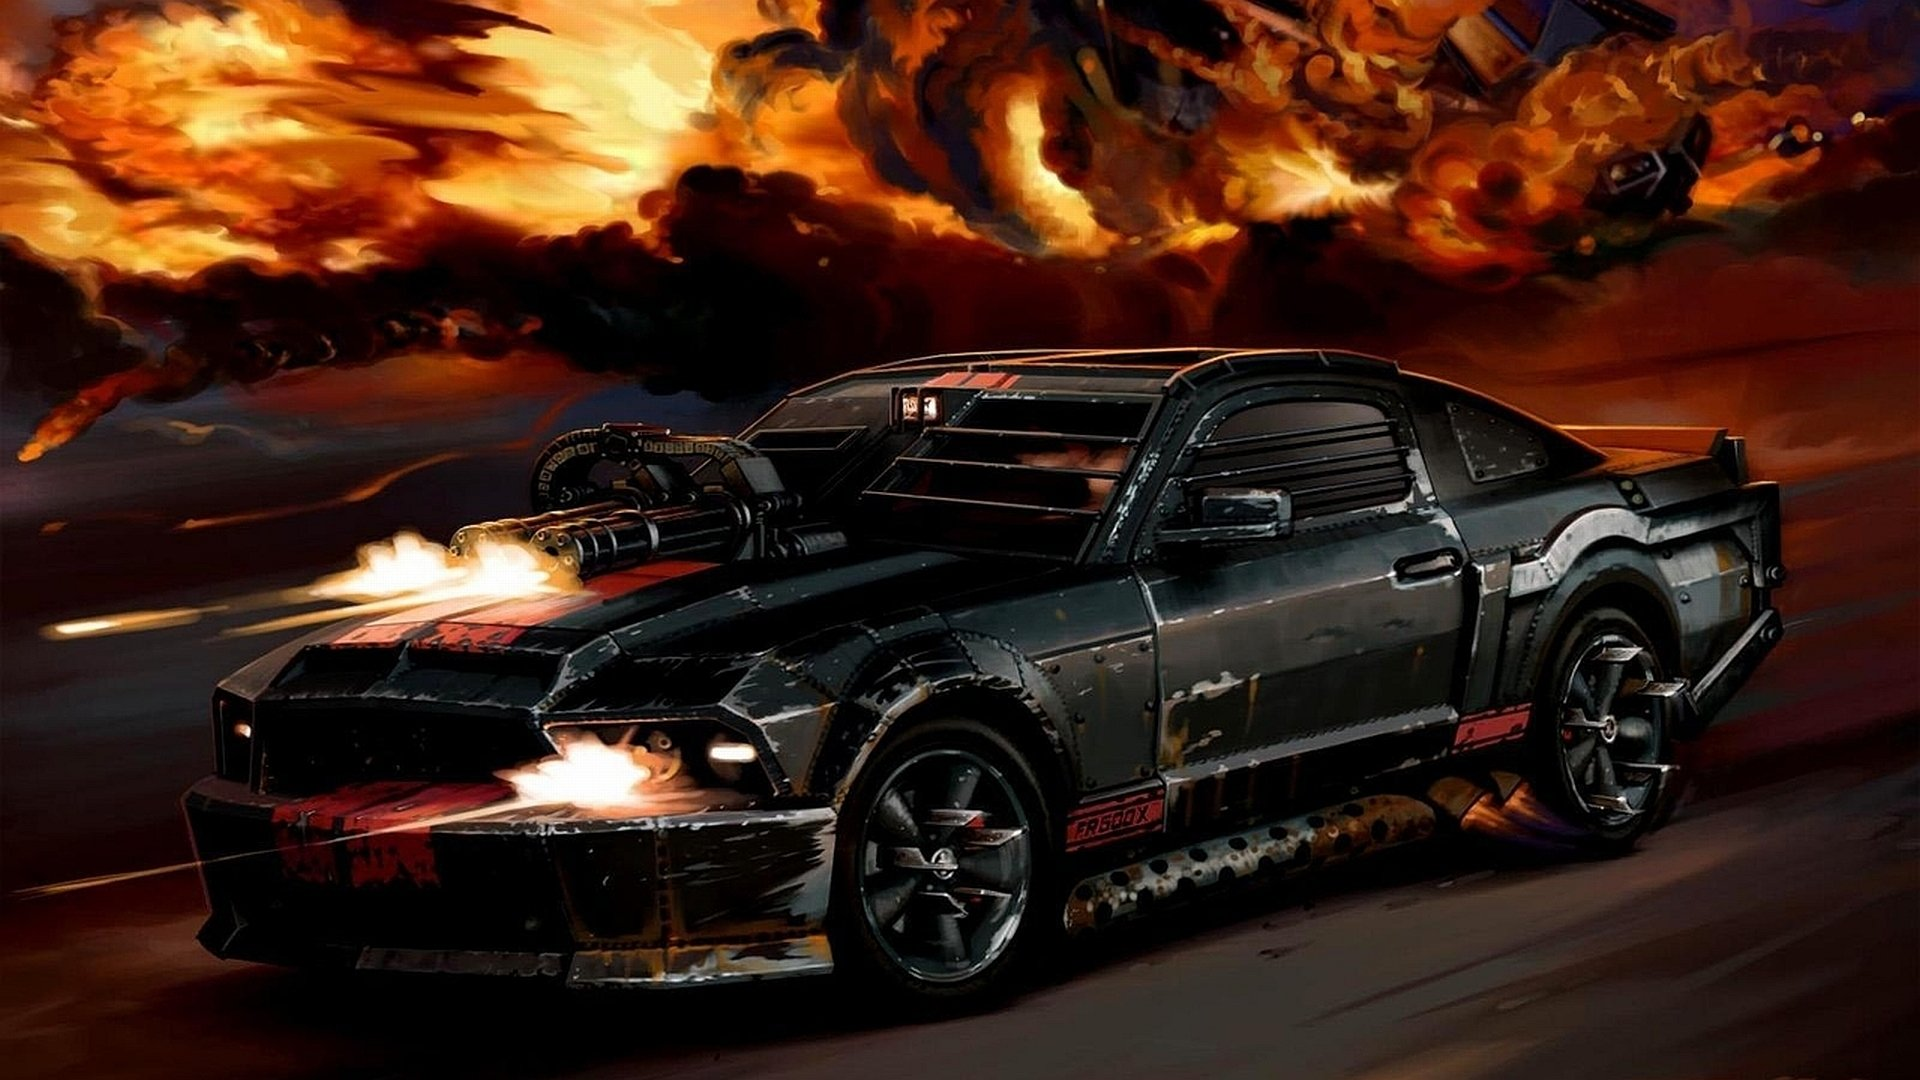 2 death race hd wallpapers | background images - wallpaper abyss